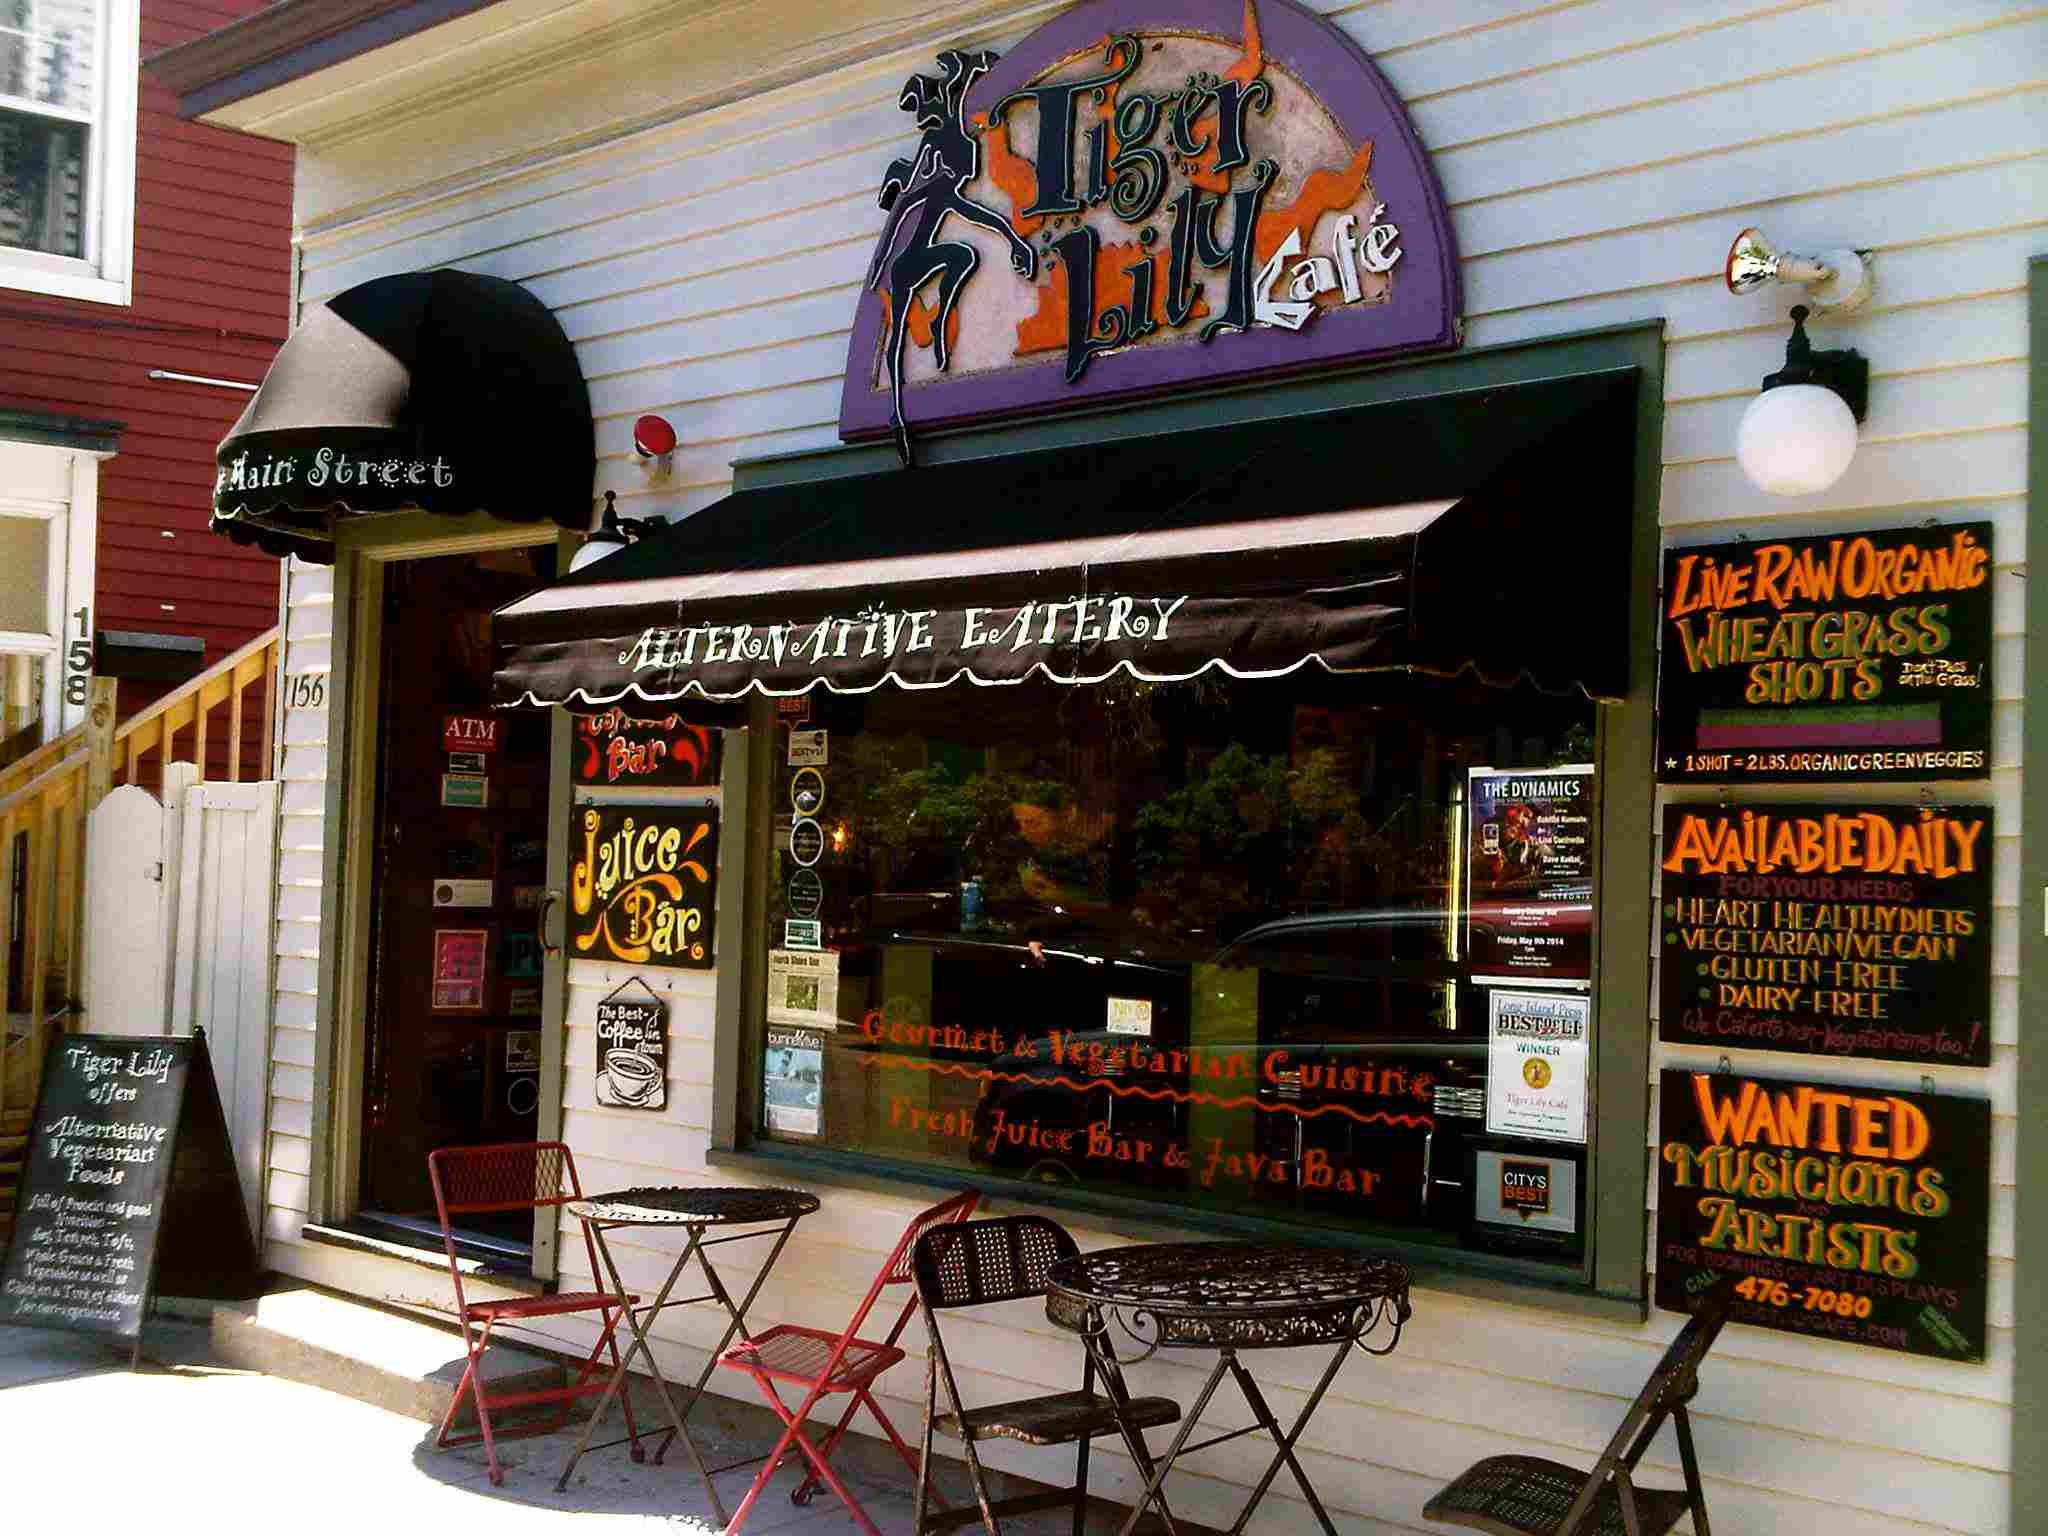 Exterior of Tiger Lily Café with outdoor seating